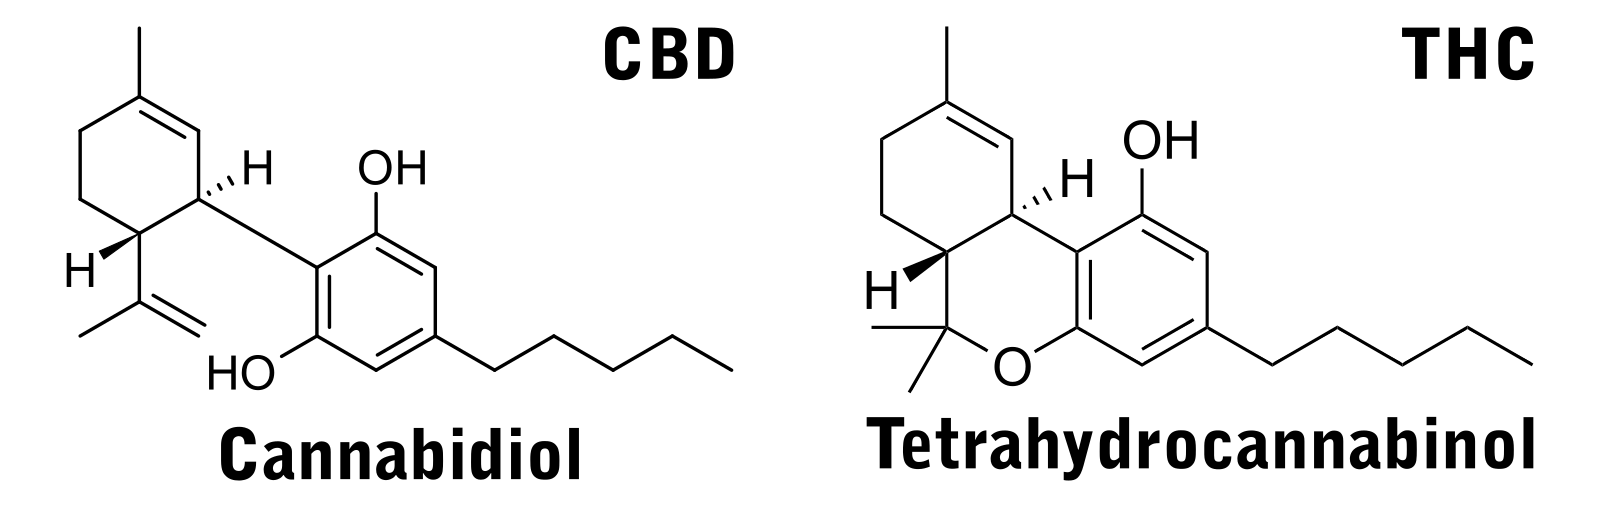 2D Structure shows the chemical differences between CBD and THC